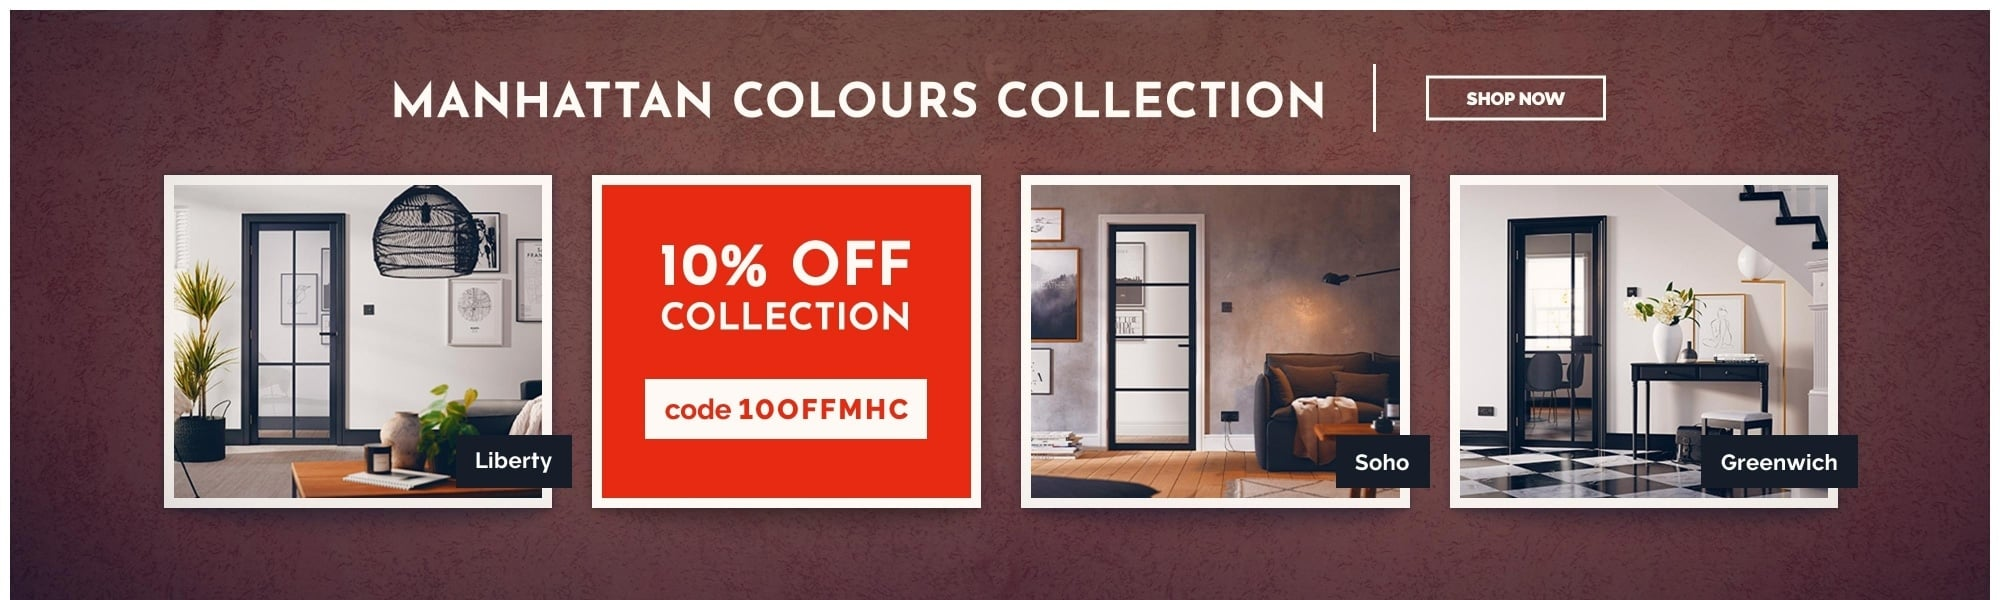 10% OFF Manhattan Colours Collection